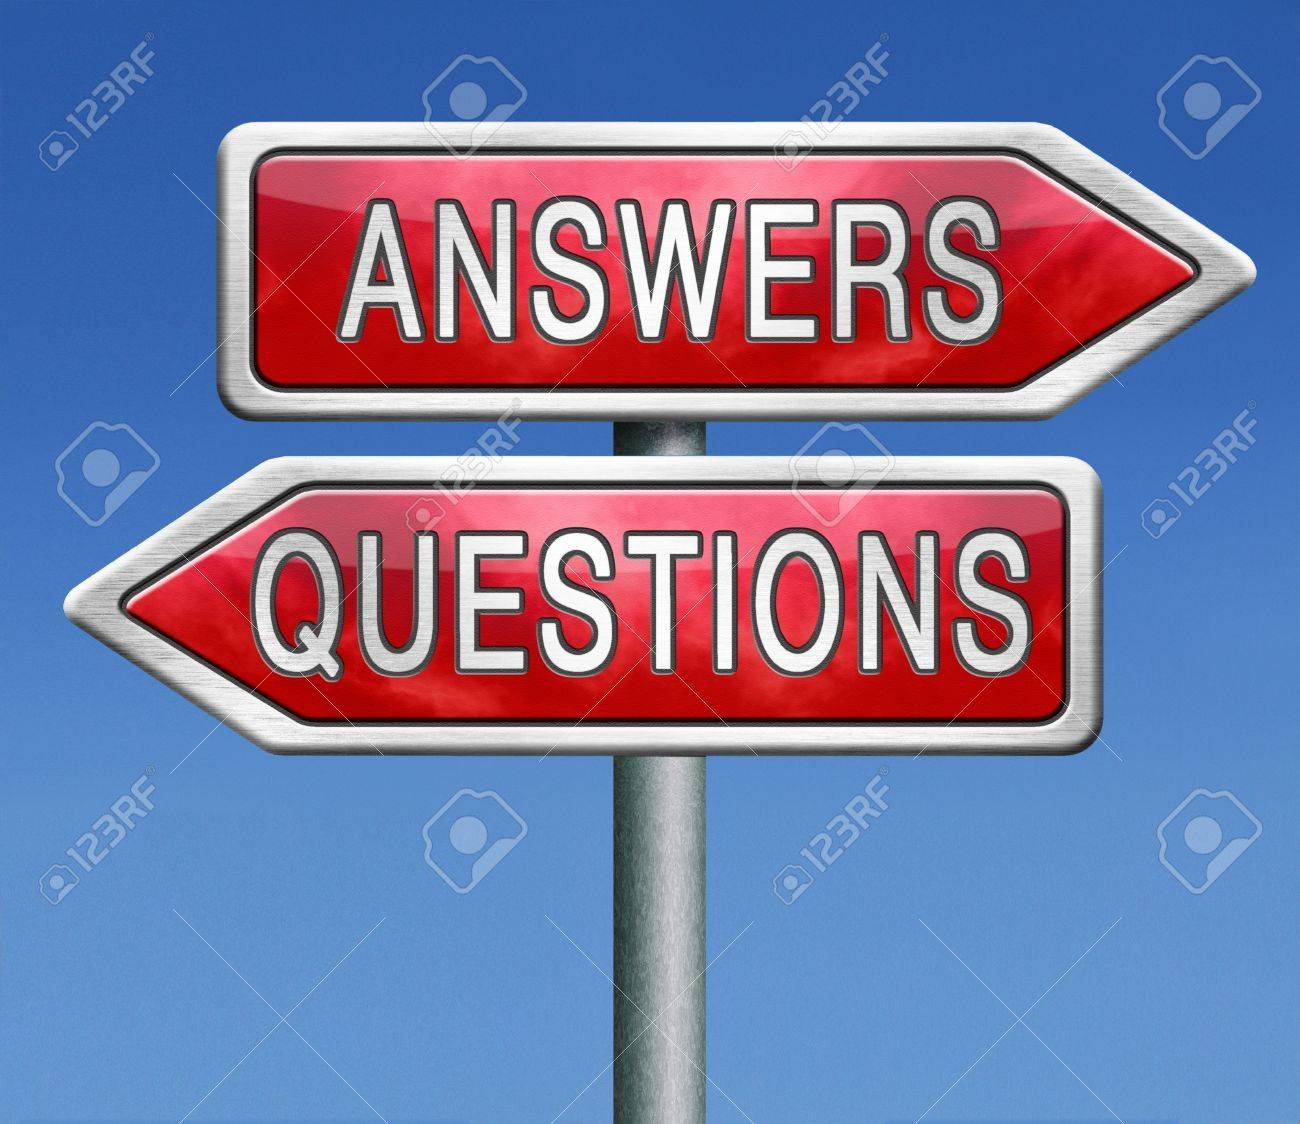 Stock Photo  Questions Answers Ask The Right Question And Get An Answer  Road Sign Indicating Online Help Or Support Desk Solving Problems